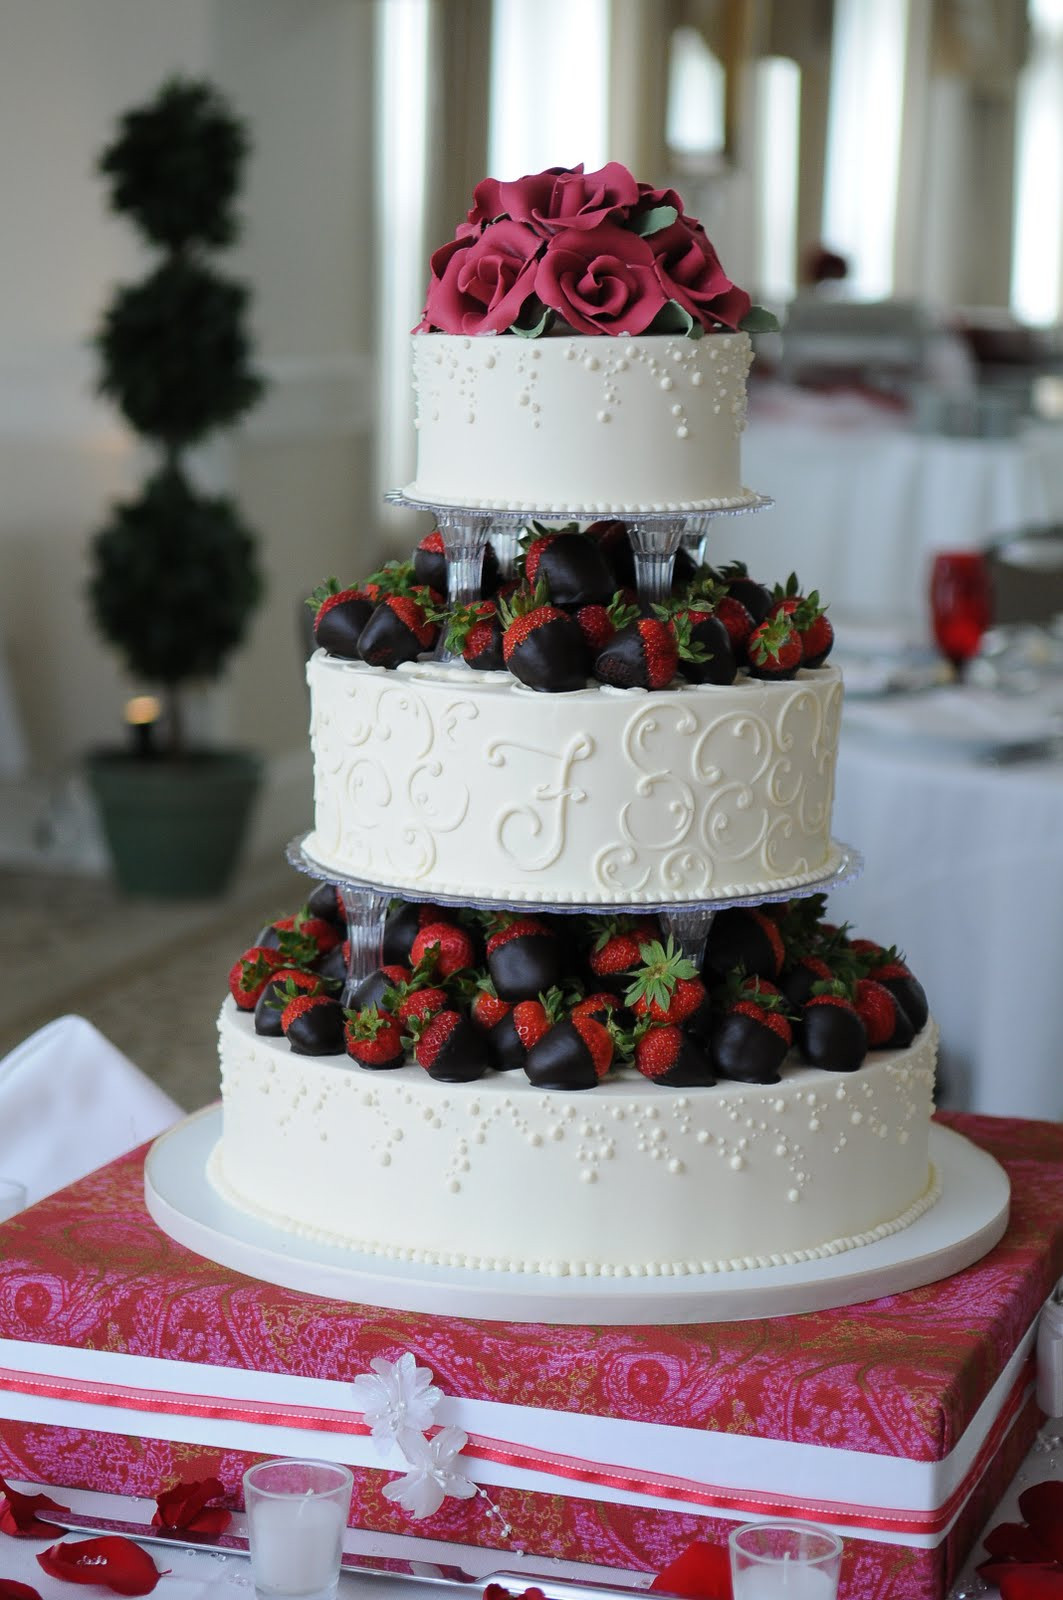 Chocolate Covered Strawberry Wedding Cakes  Dessert Works Bakery Chocolate Dipped Strawberries